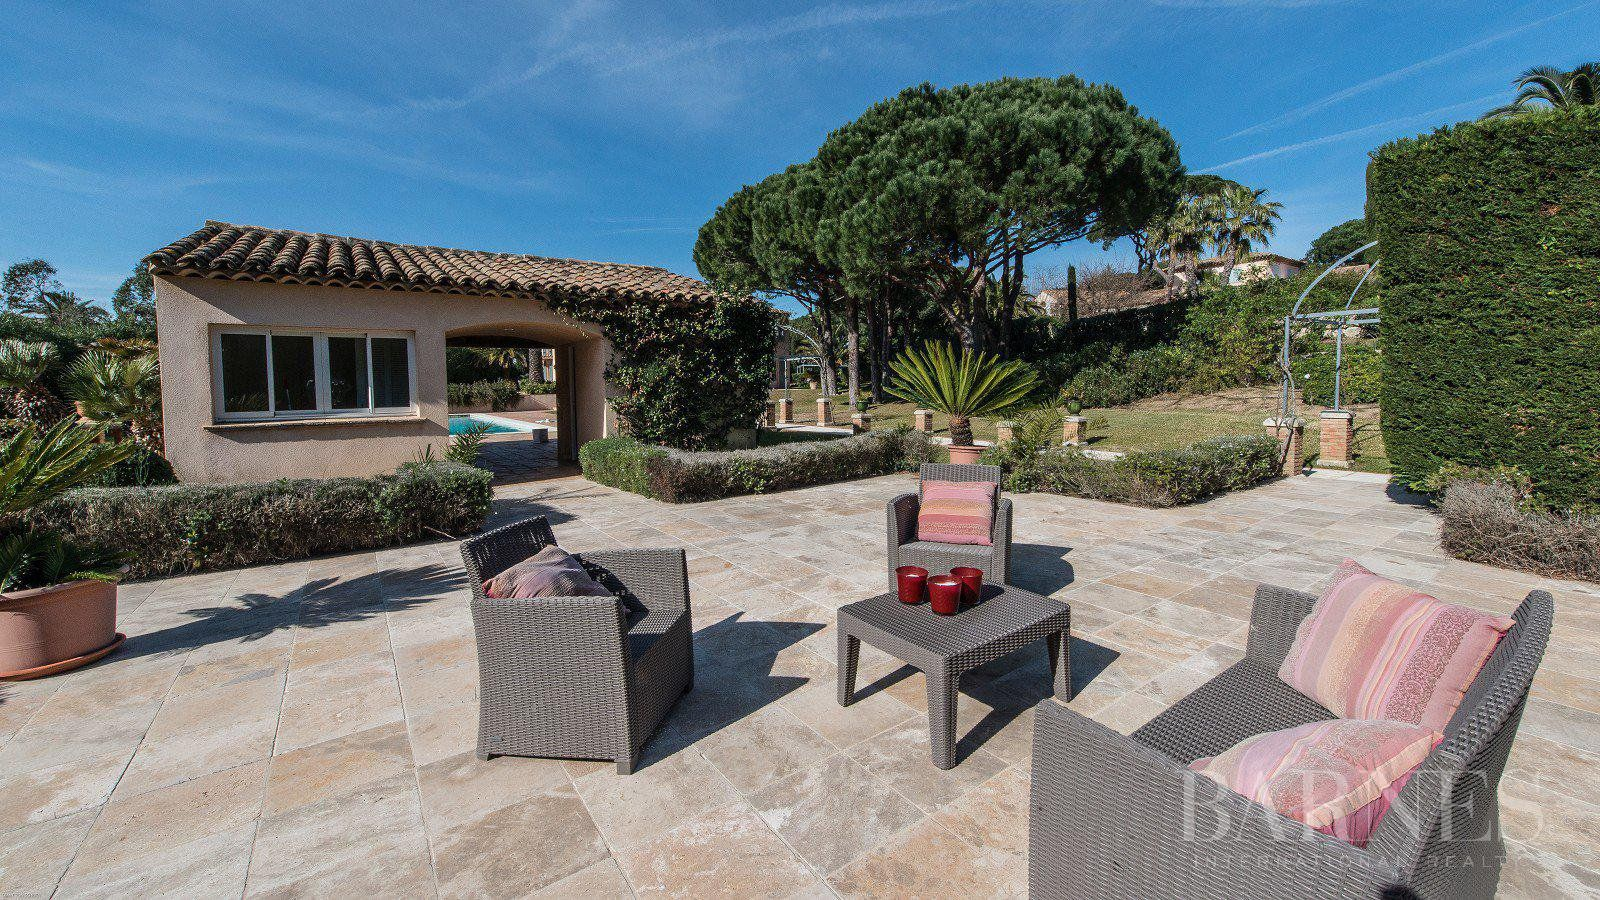 SAINT-TROPEZ - Prestigious property in the parks with caretaker's house